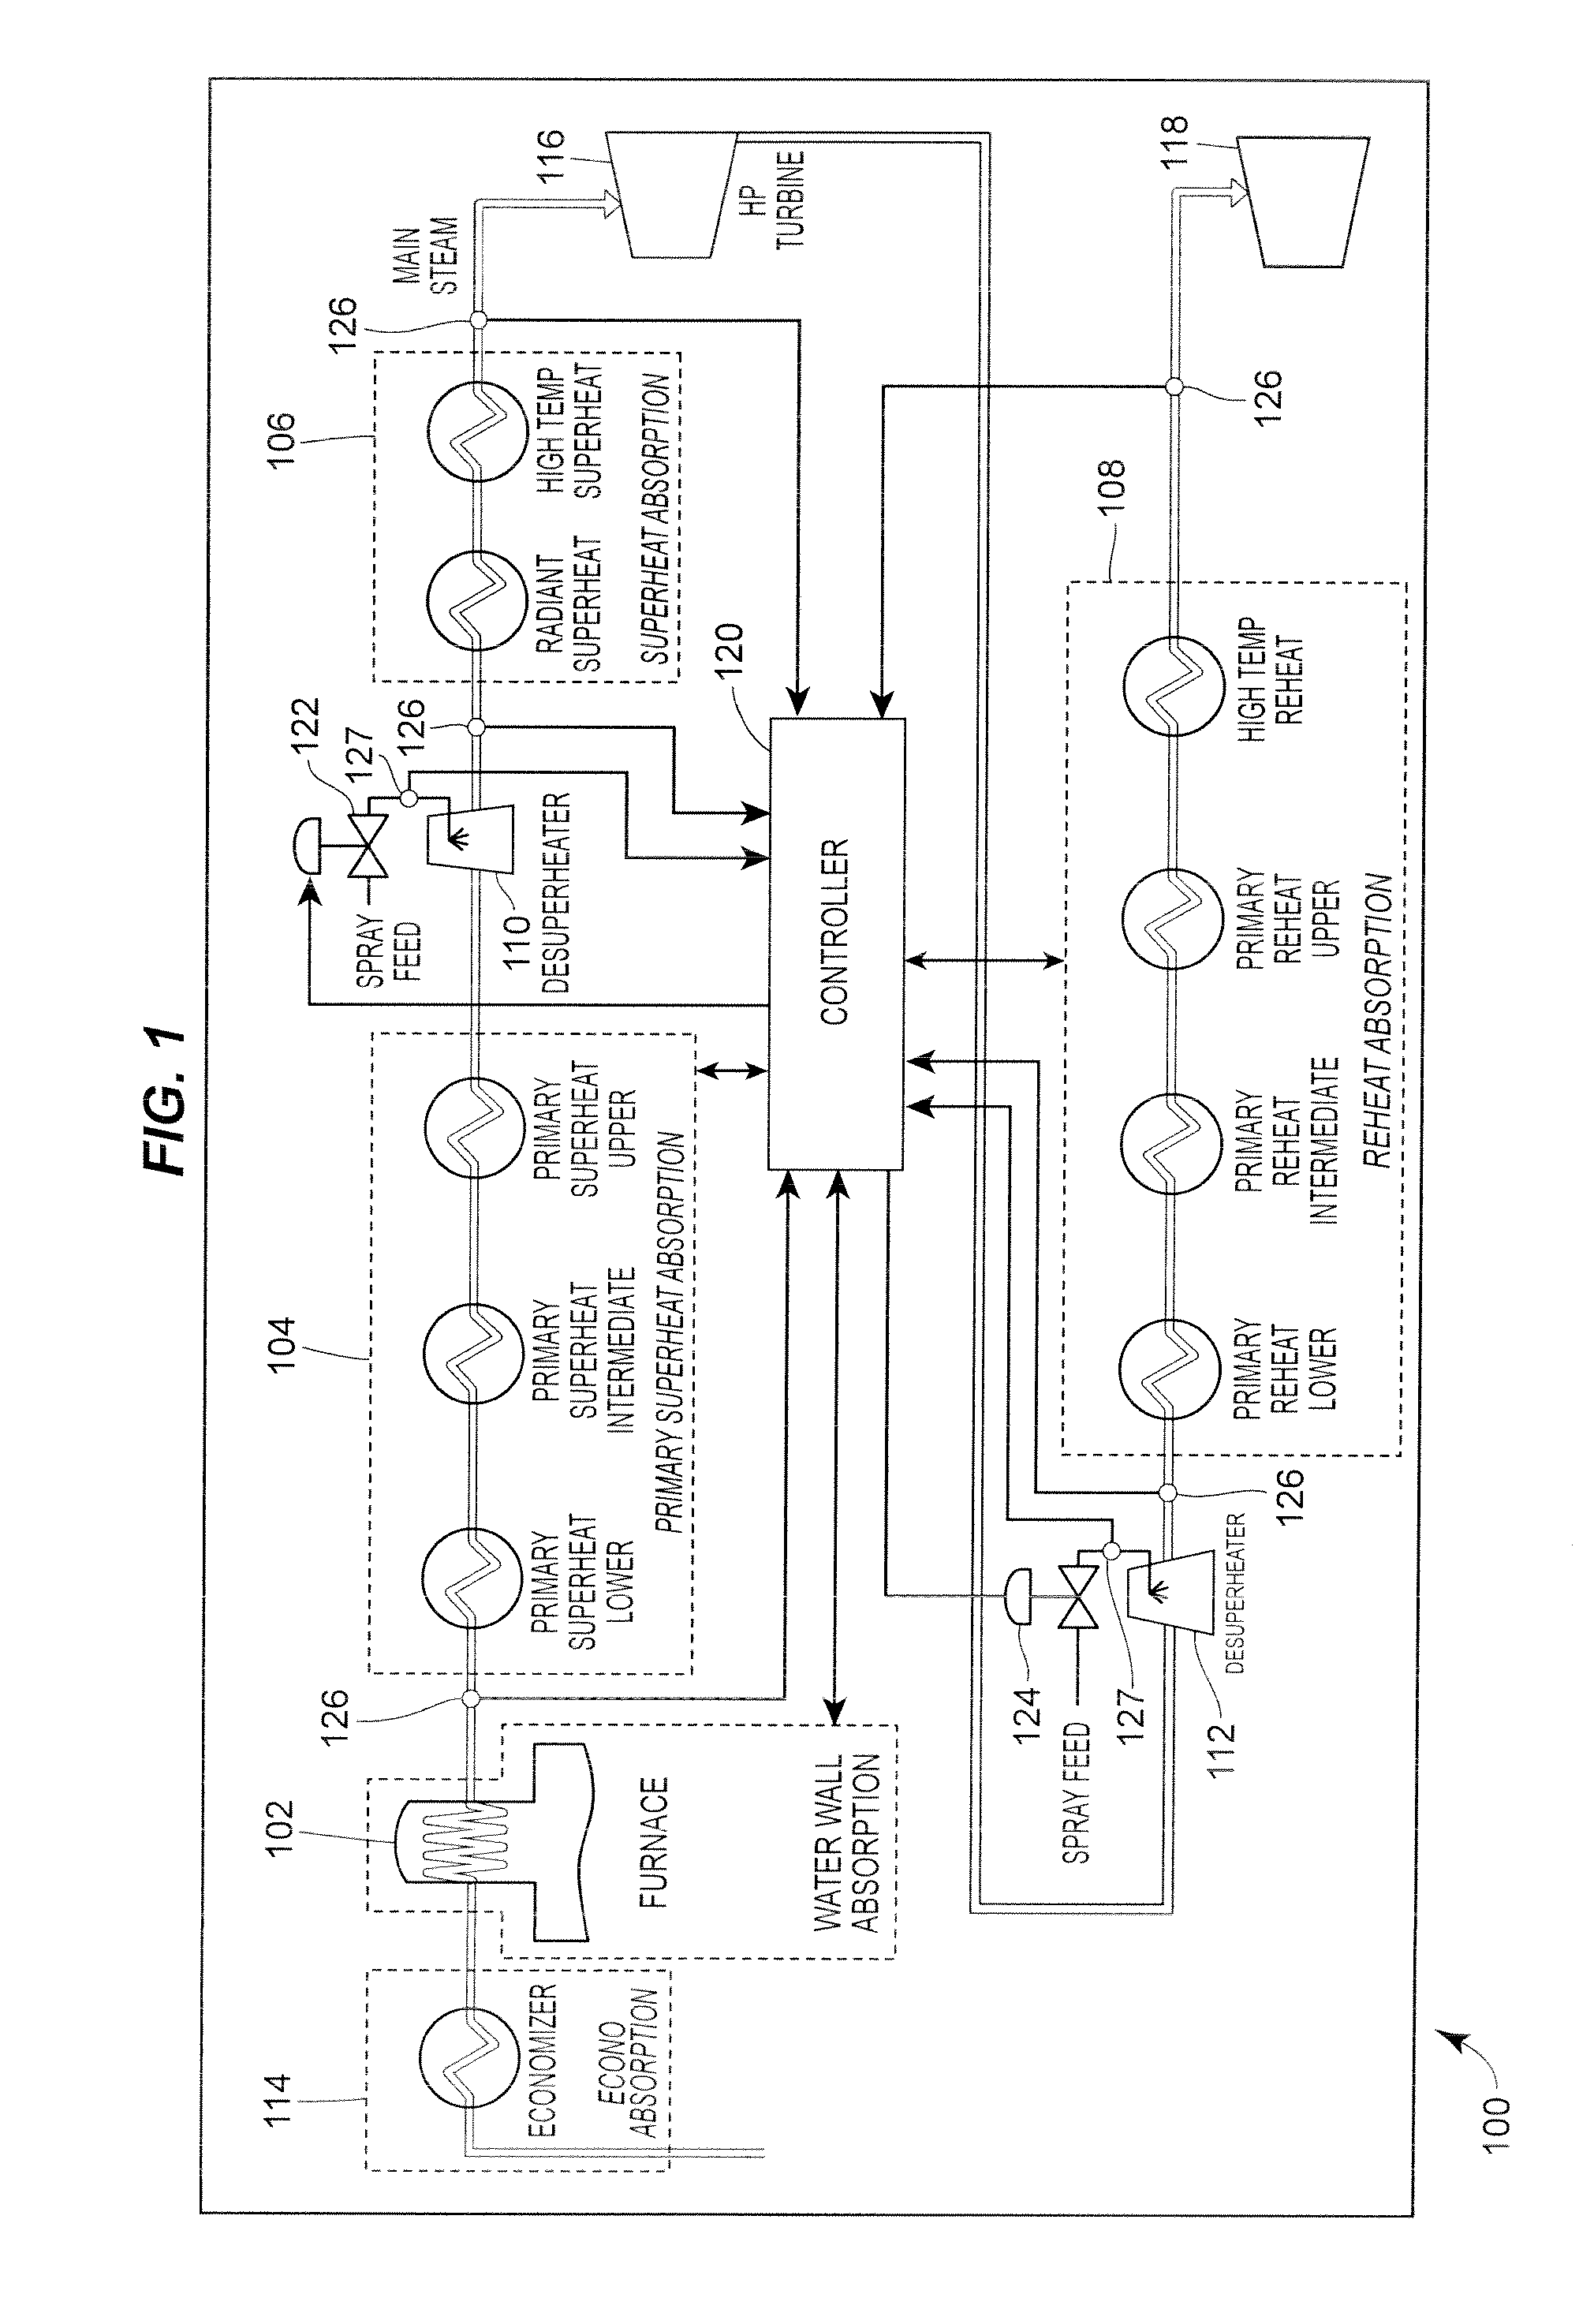 Patent US Steam Temperature Control in a Boiler